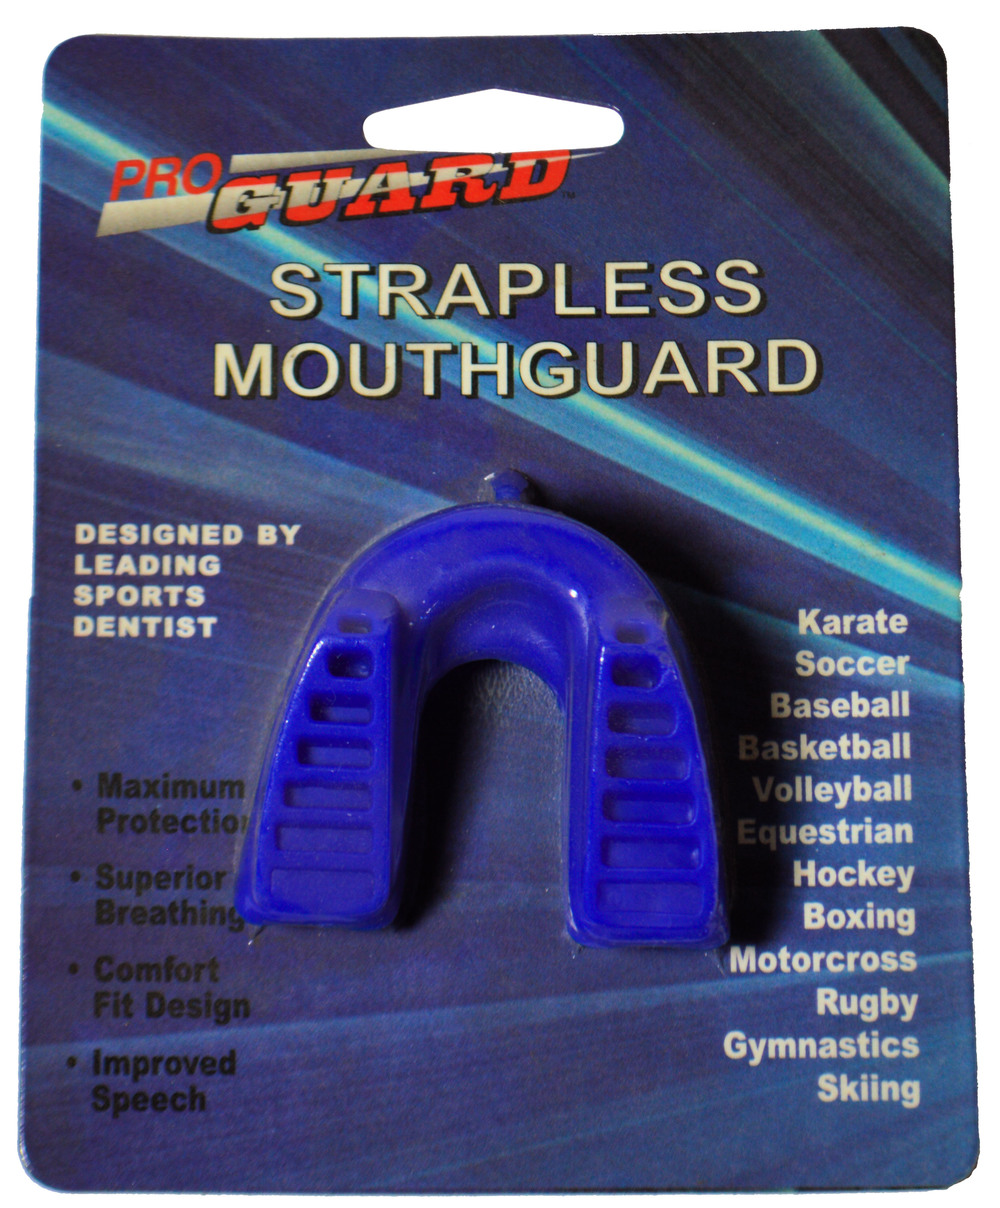 9002RY Royal Strapless Mouth Guard.jpg